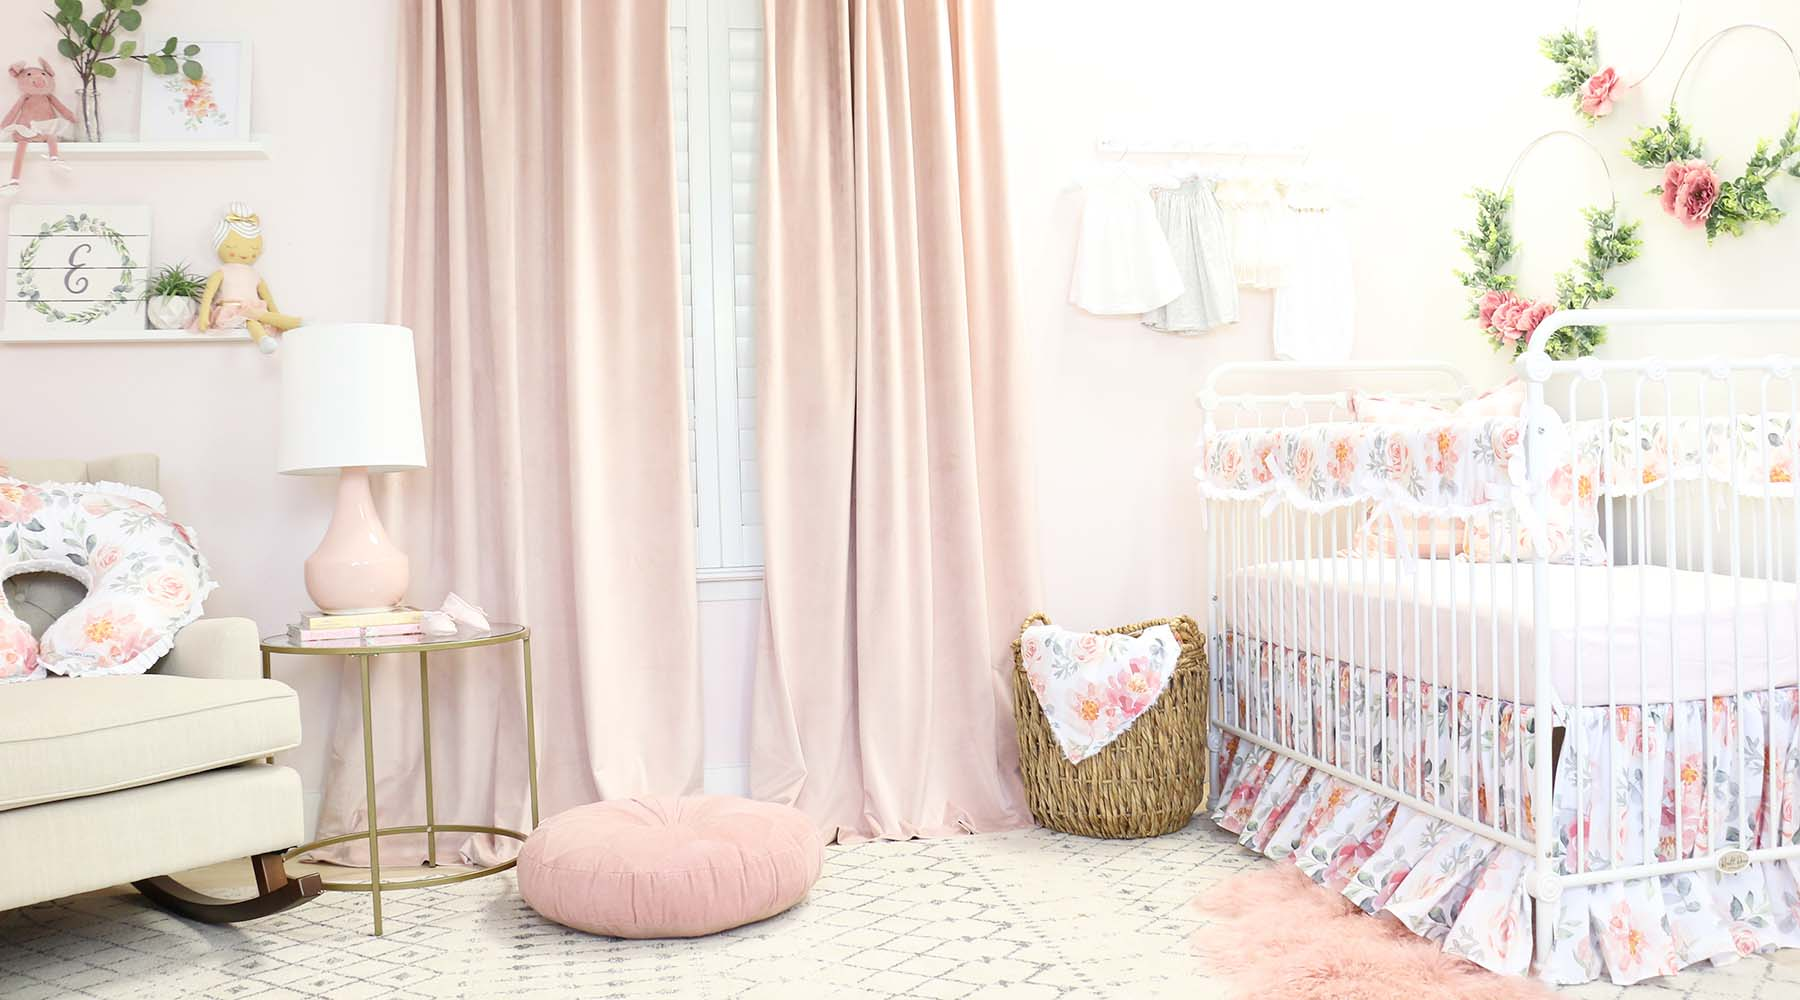 elegant baby furniture ivory gorgeous and elegant baby girls nursery in dusty rose floral caden lane baby boutique nursery bedding accessories gifts